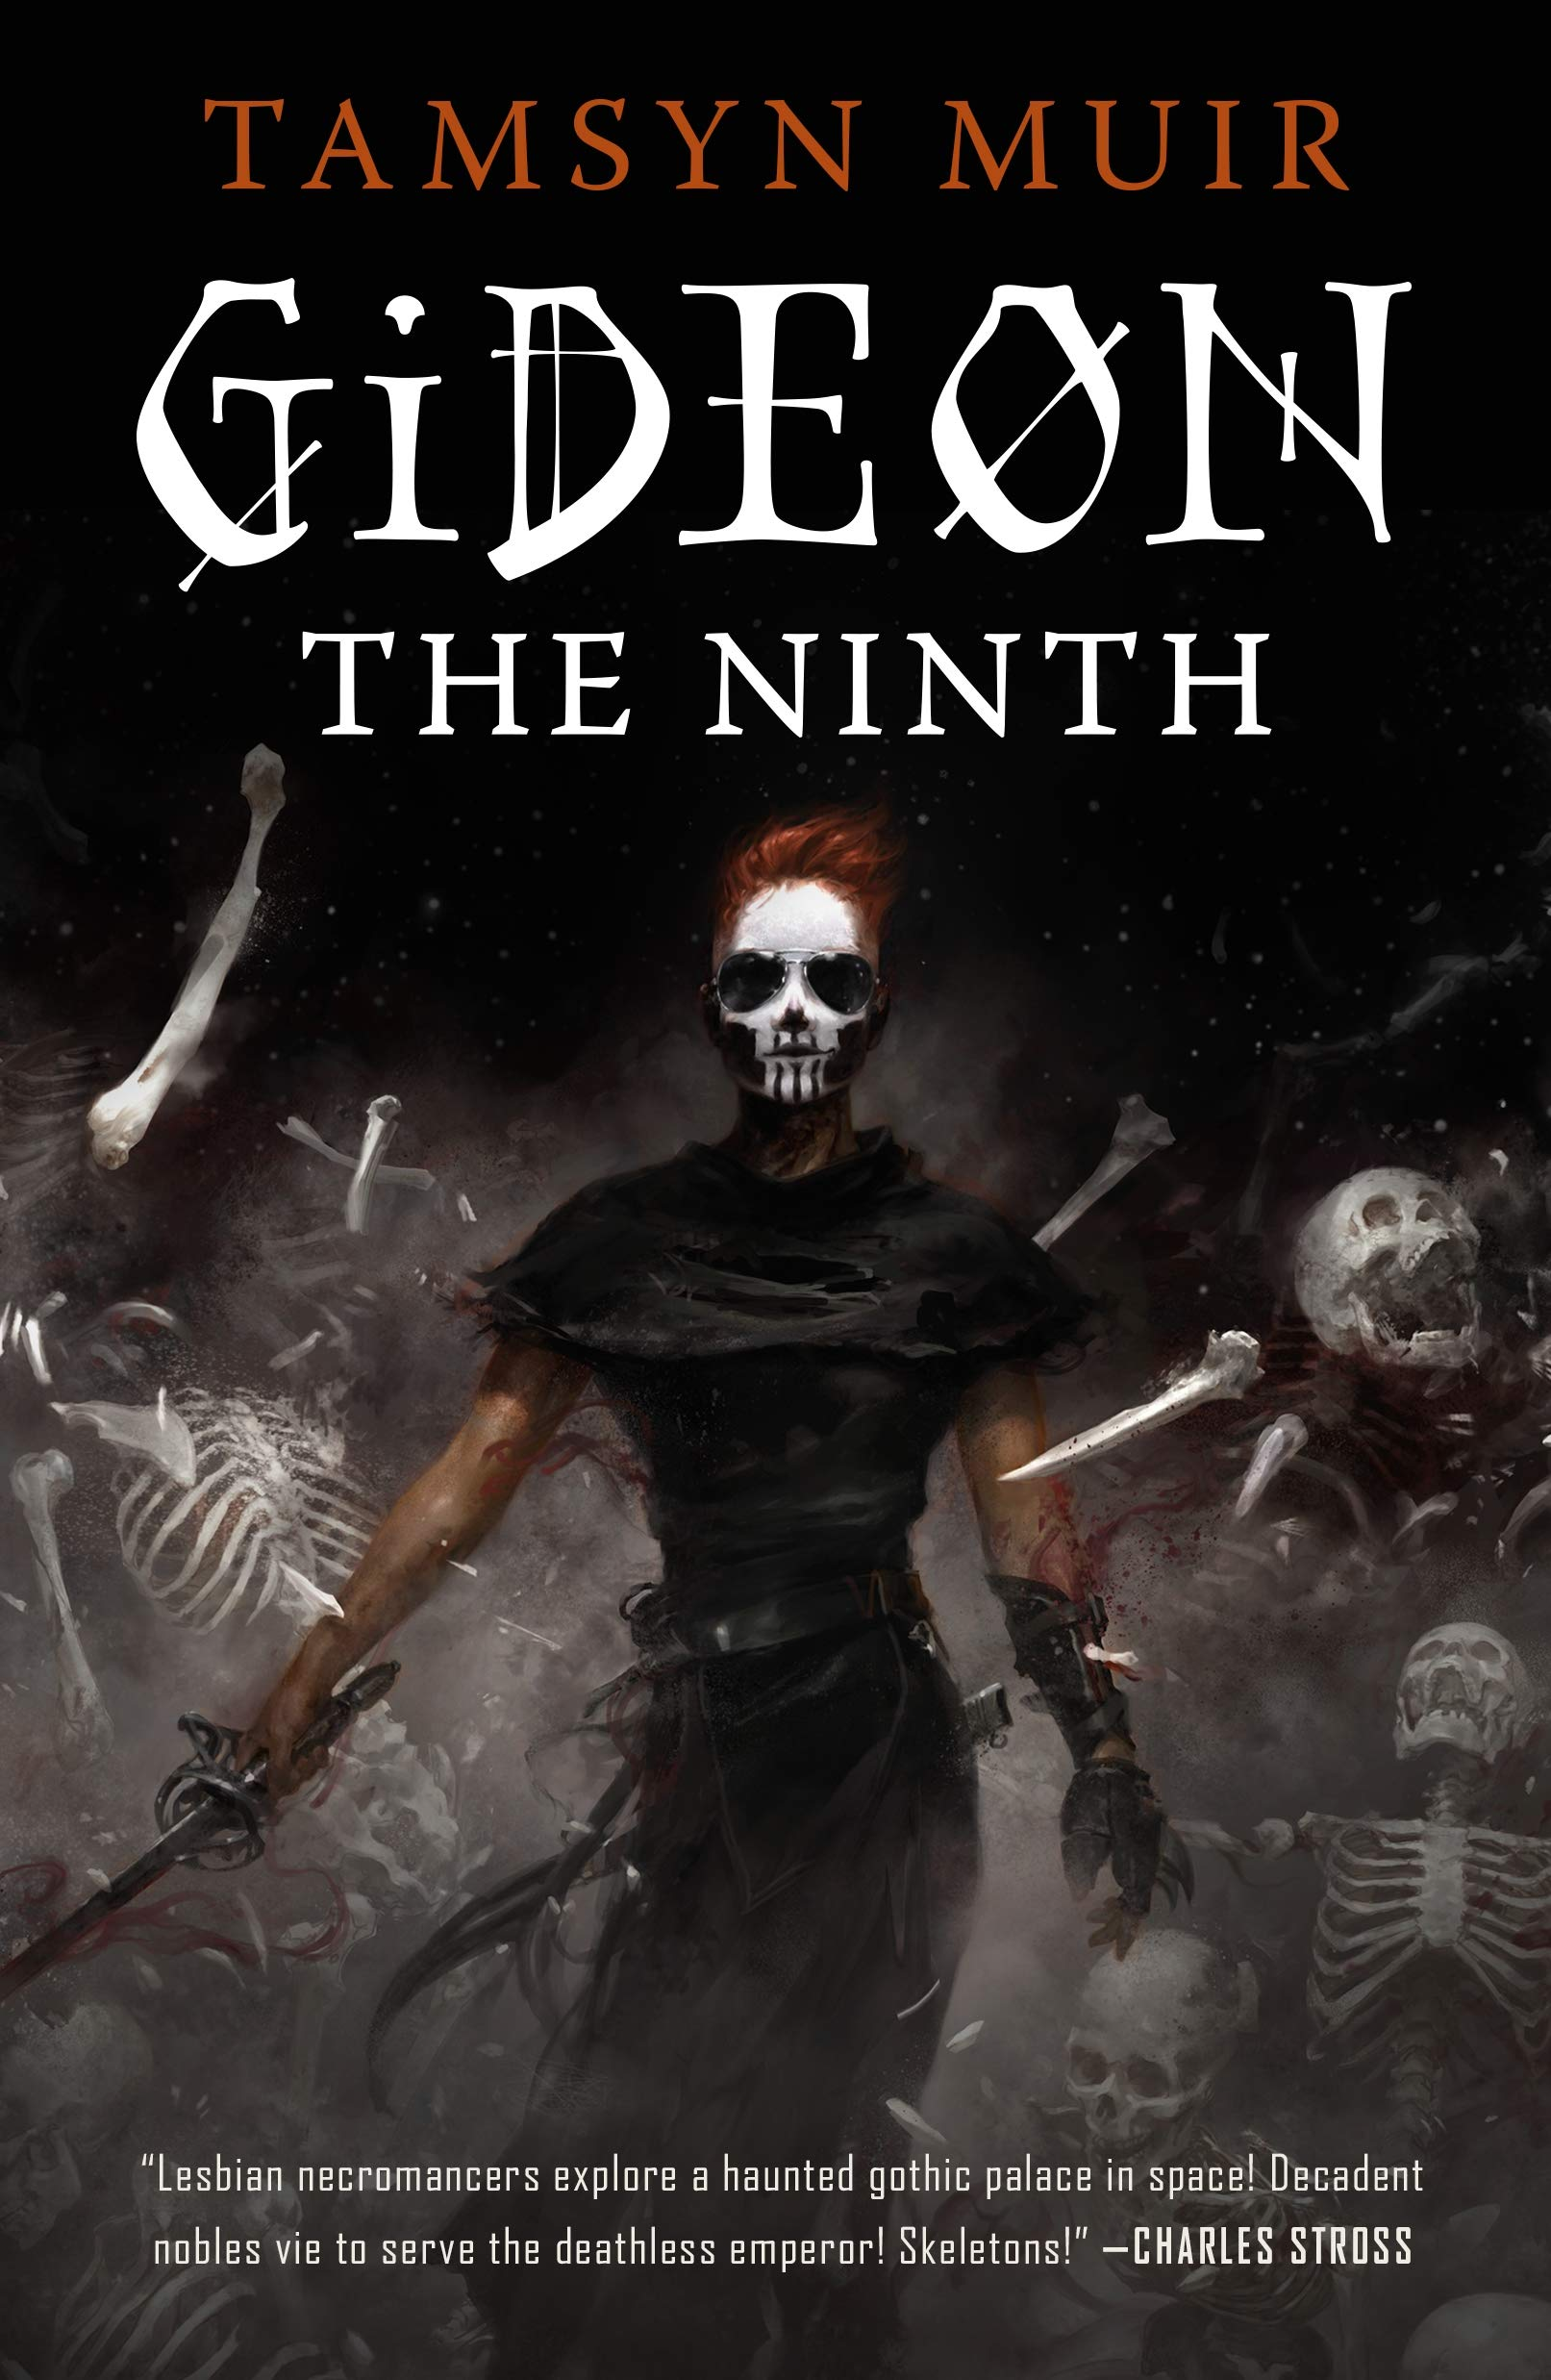 """Escaping The Screen"" -- The cover of Tamsyn Muirs book Gideon The Ninth about two necromancers trying to escape death."